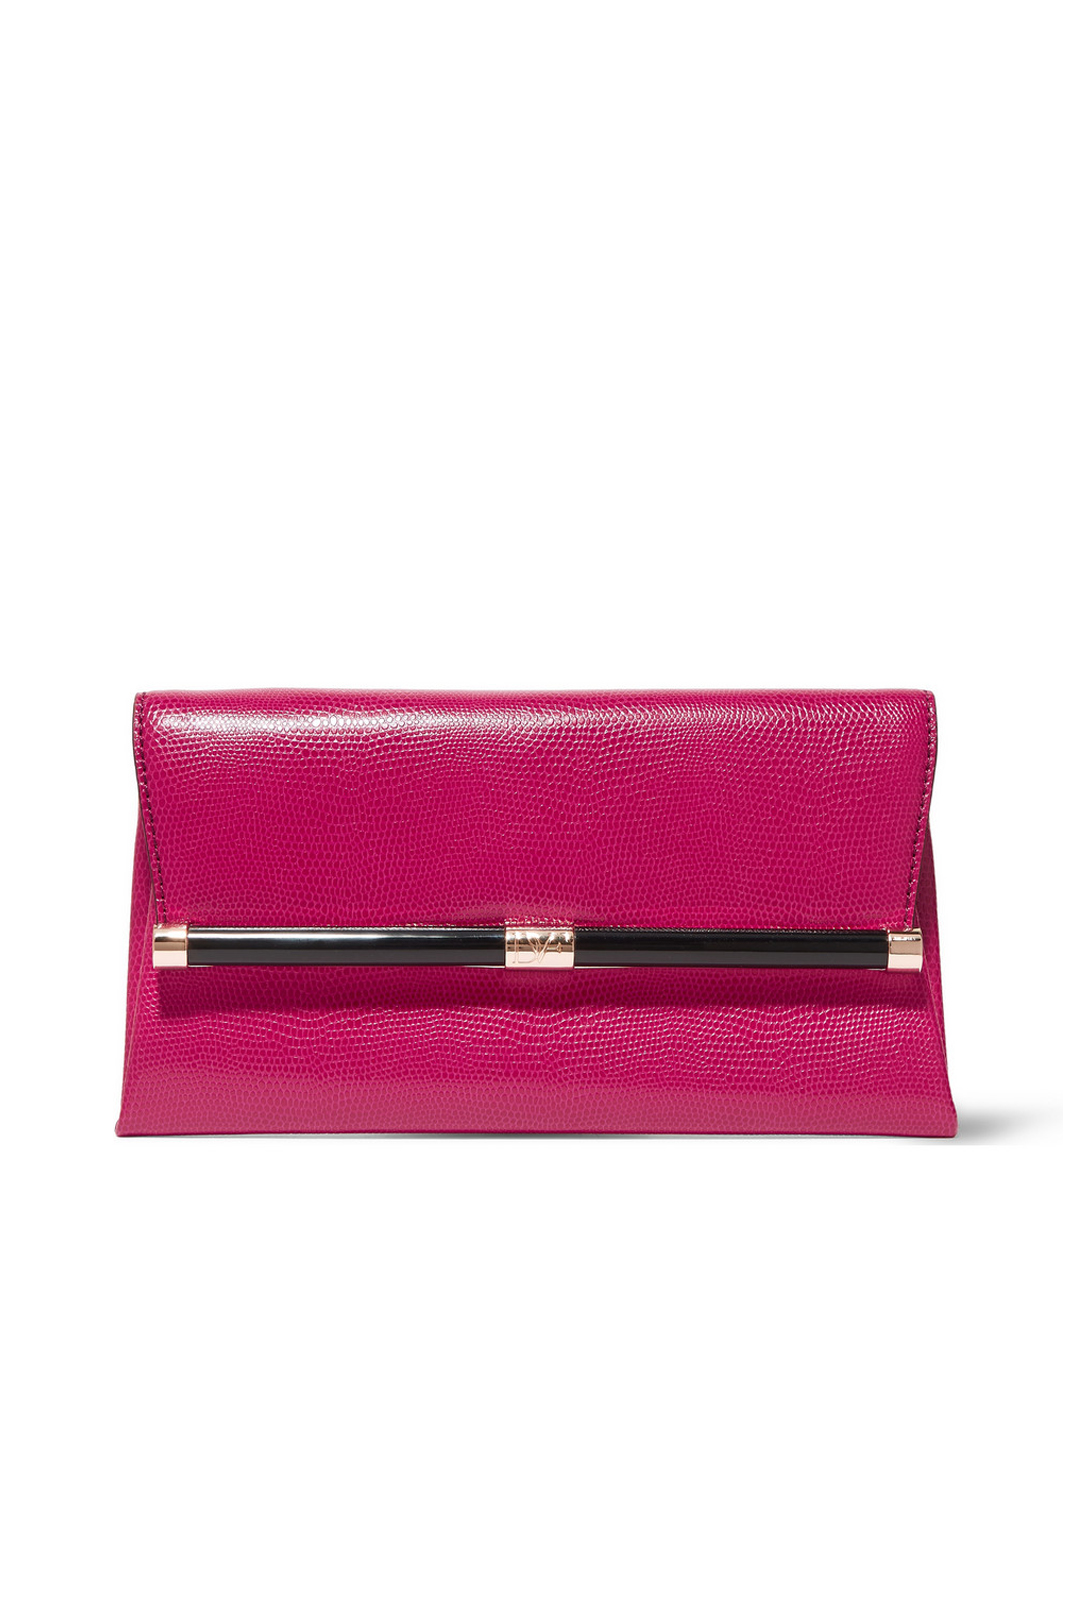 Lizzard Leather Clutch